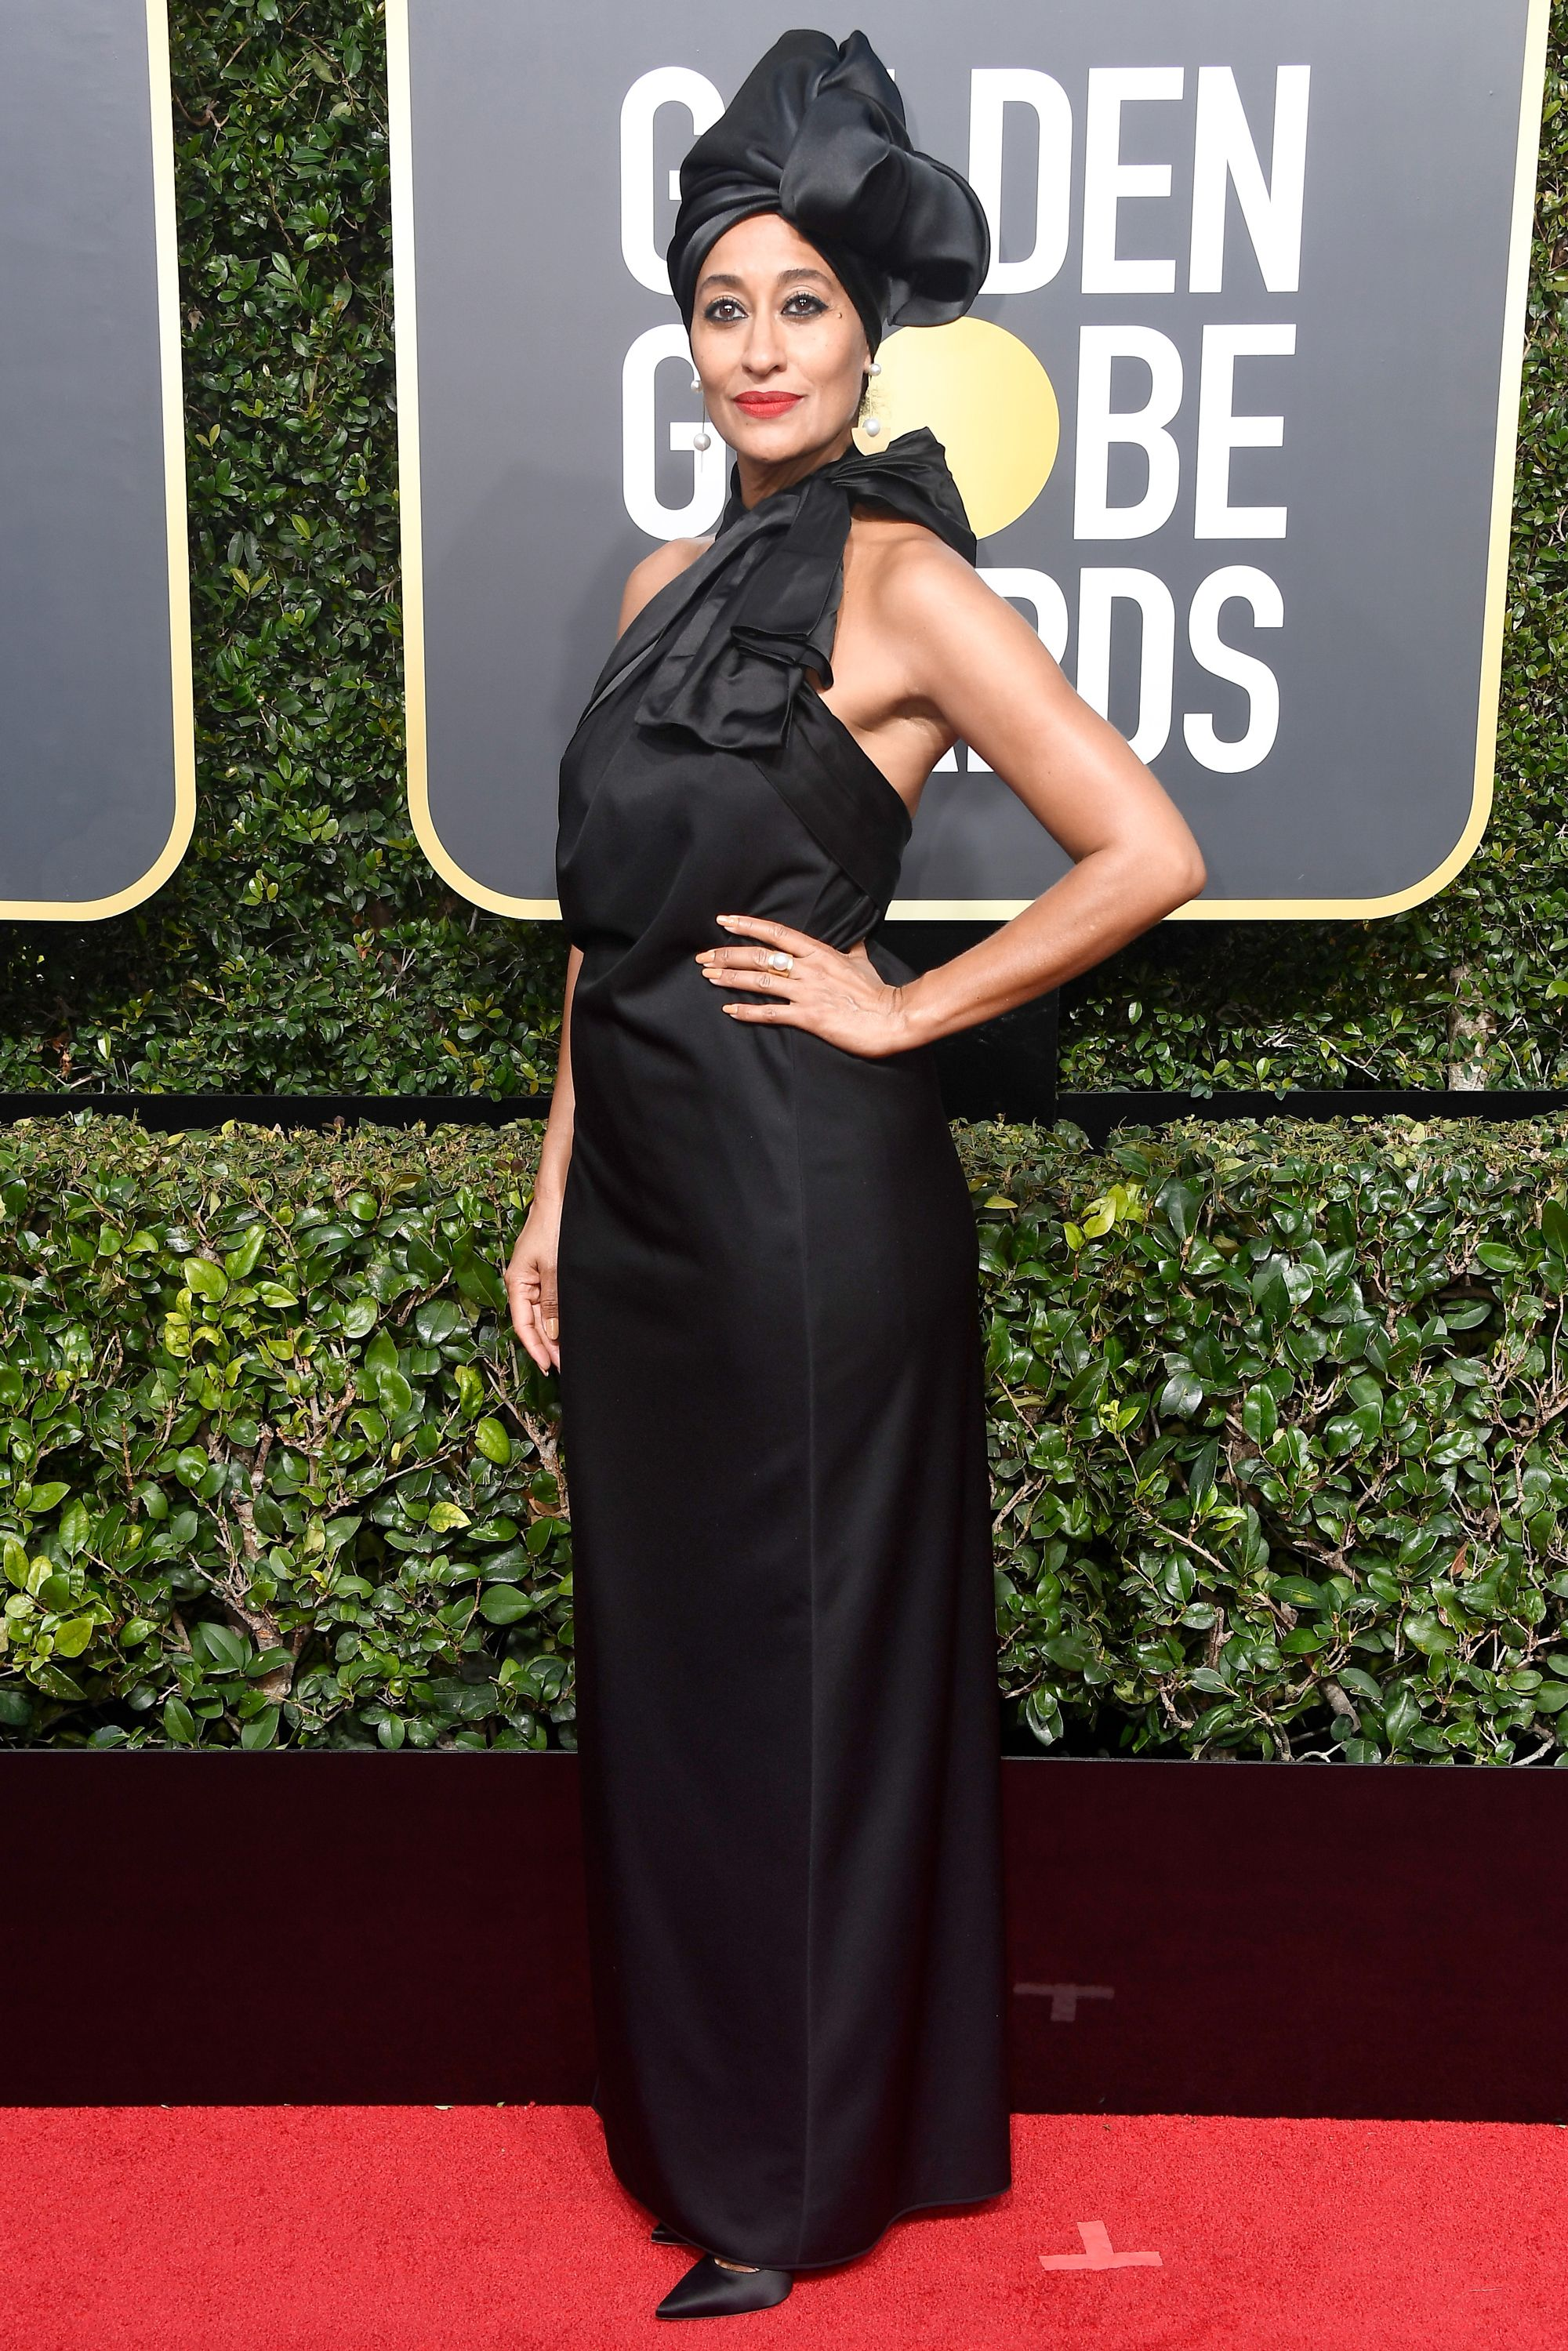 f2fb56b793cb All the Glamorous 2018 Golden Globes Red Carpet Arrivals in 2018 ...